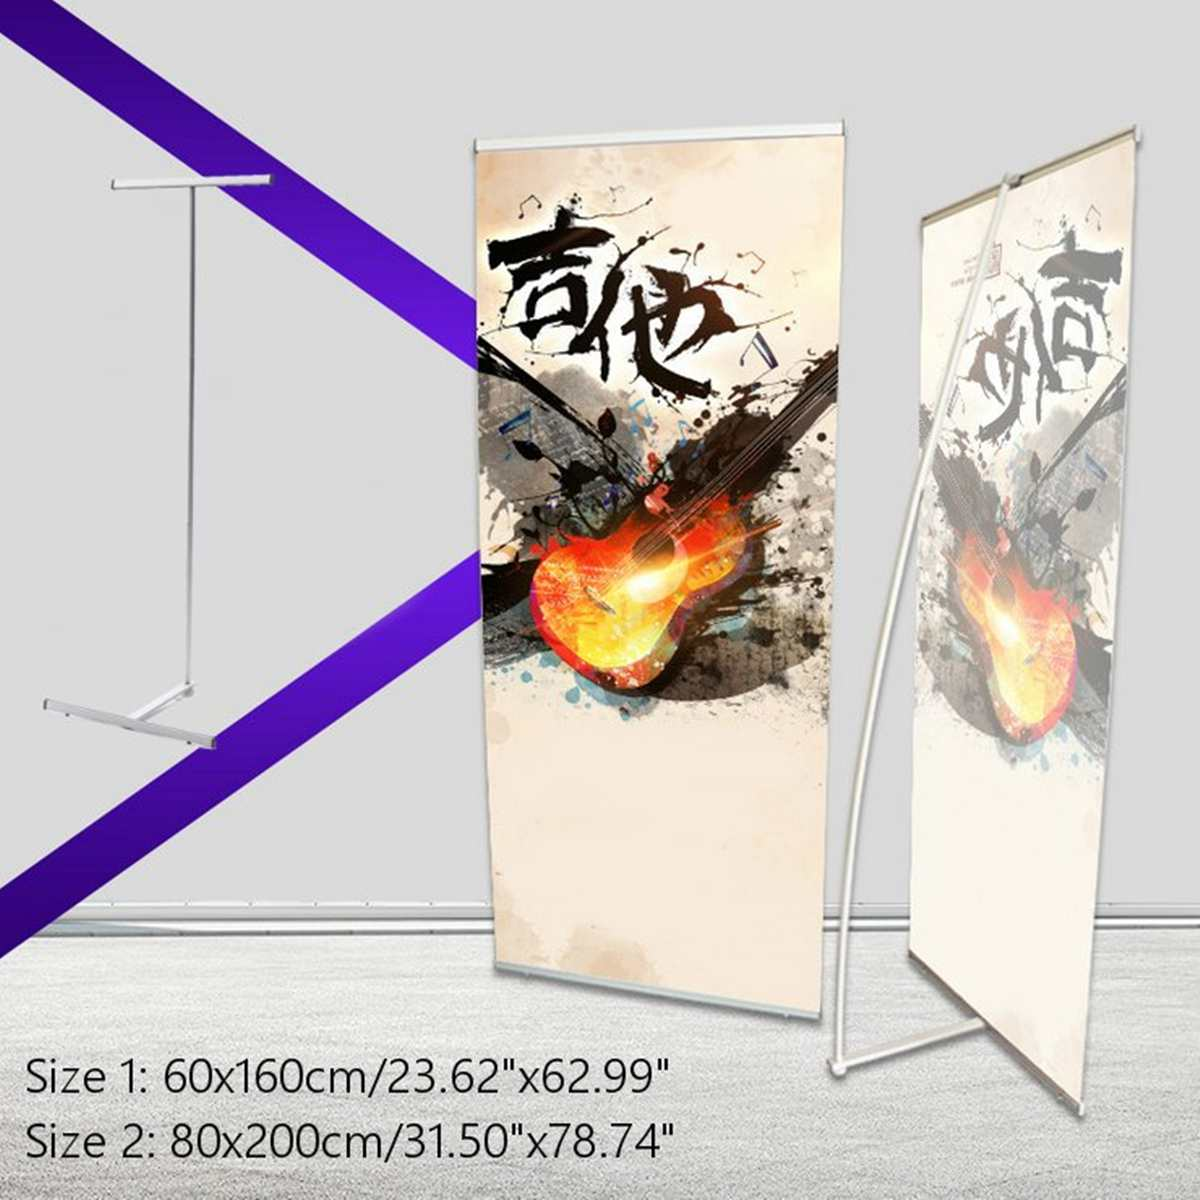 Aluminum Alloy Advertising Stand Frame Telescopic Display Rack Holder Exhibition Wedding Backdrop Banner Trade Show Decoration